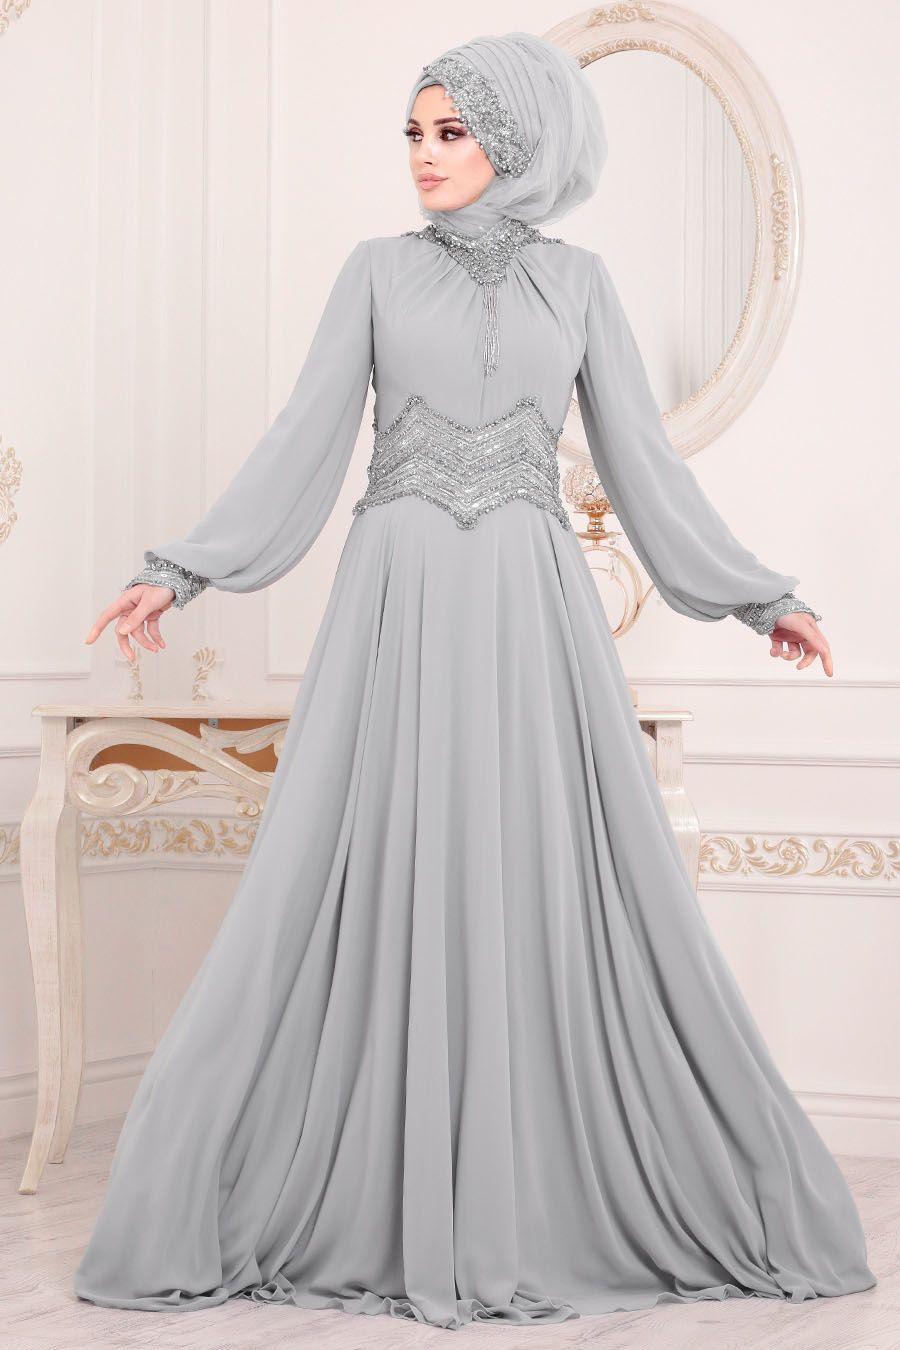 Yeni Sezon Patirti Kampanyali Urunler In 2020 Dresses Evening Dresses Evening Dress Fashion